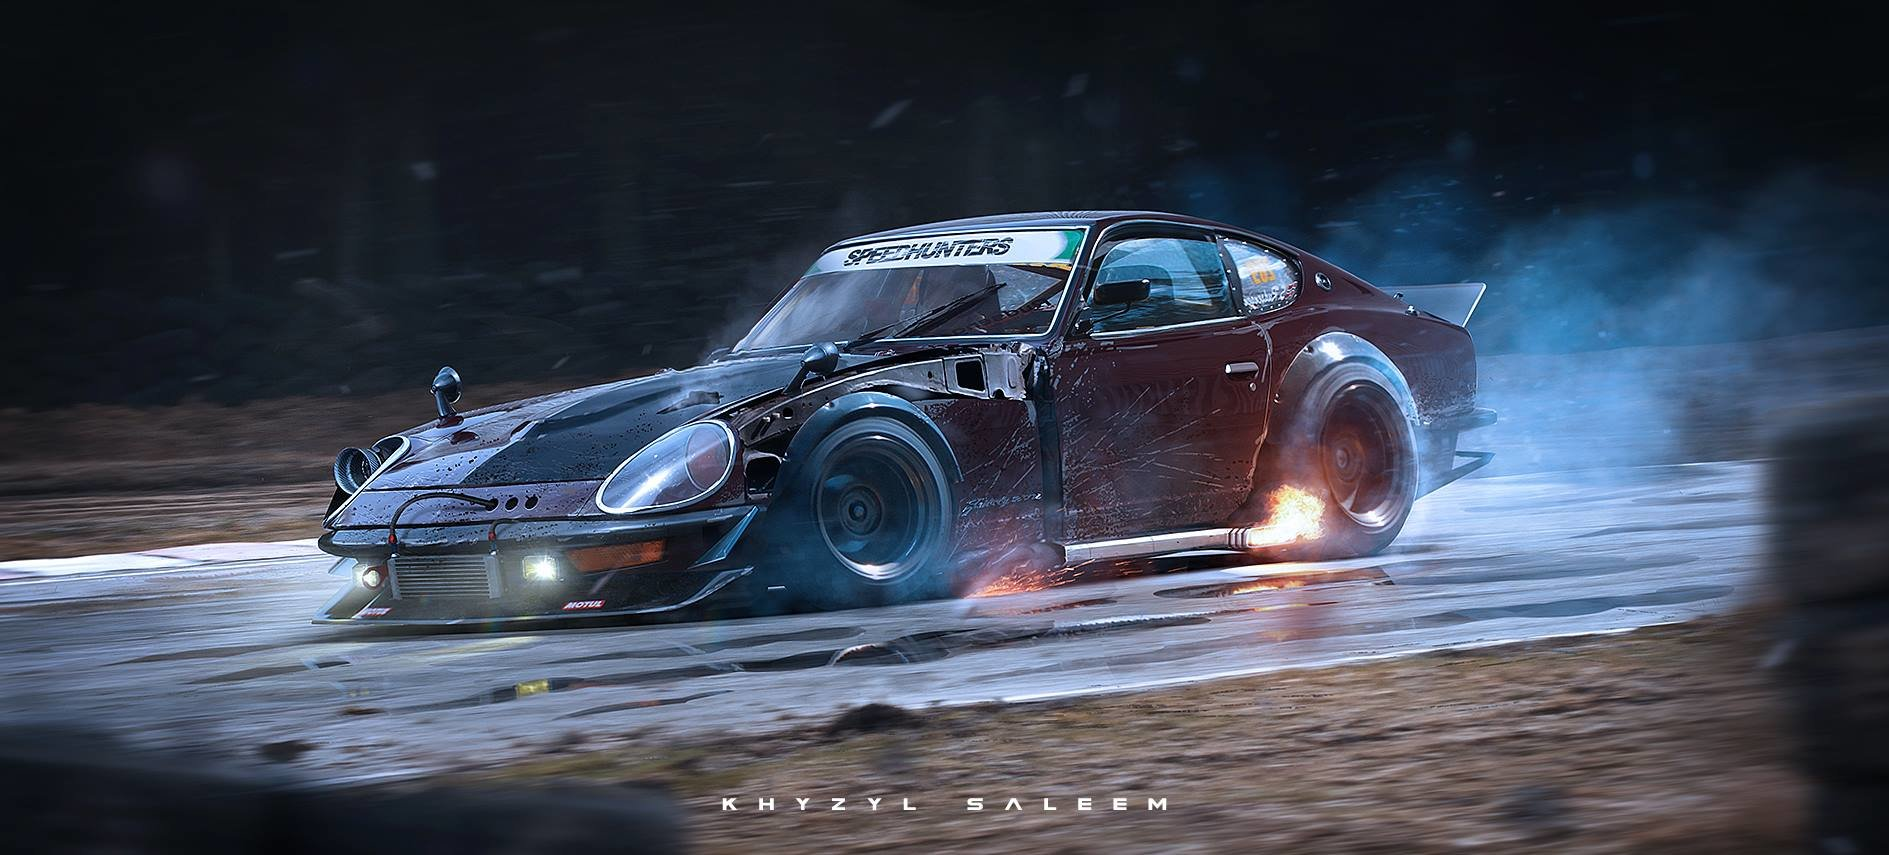 ArtStation - Gatebil 240z, Khyzyl Saleem